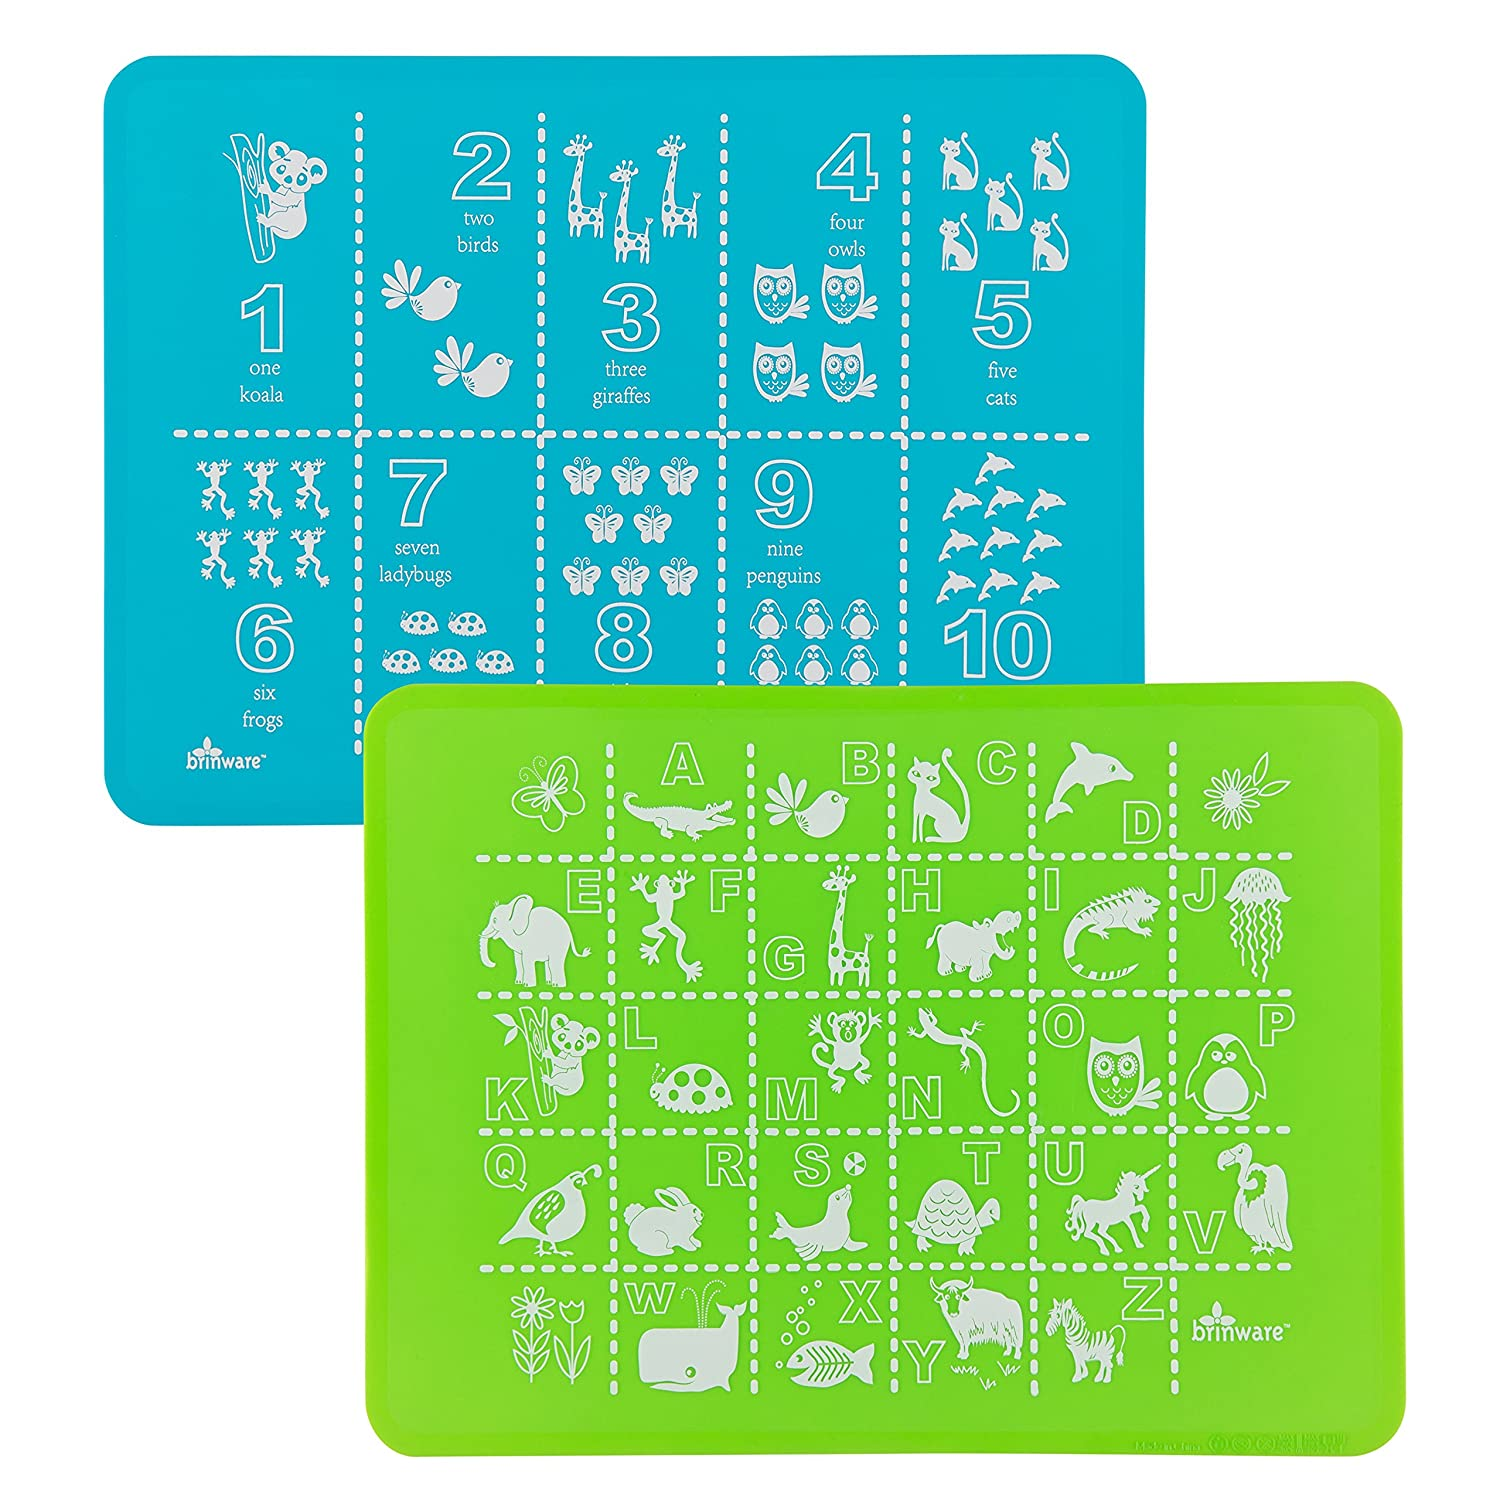 Amazon.com : Brinware Placemat Set - ABC & 123 - Blue/Green : Baby